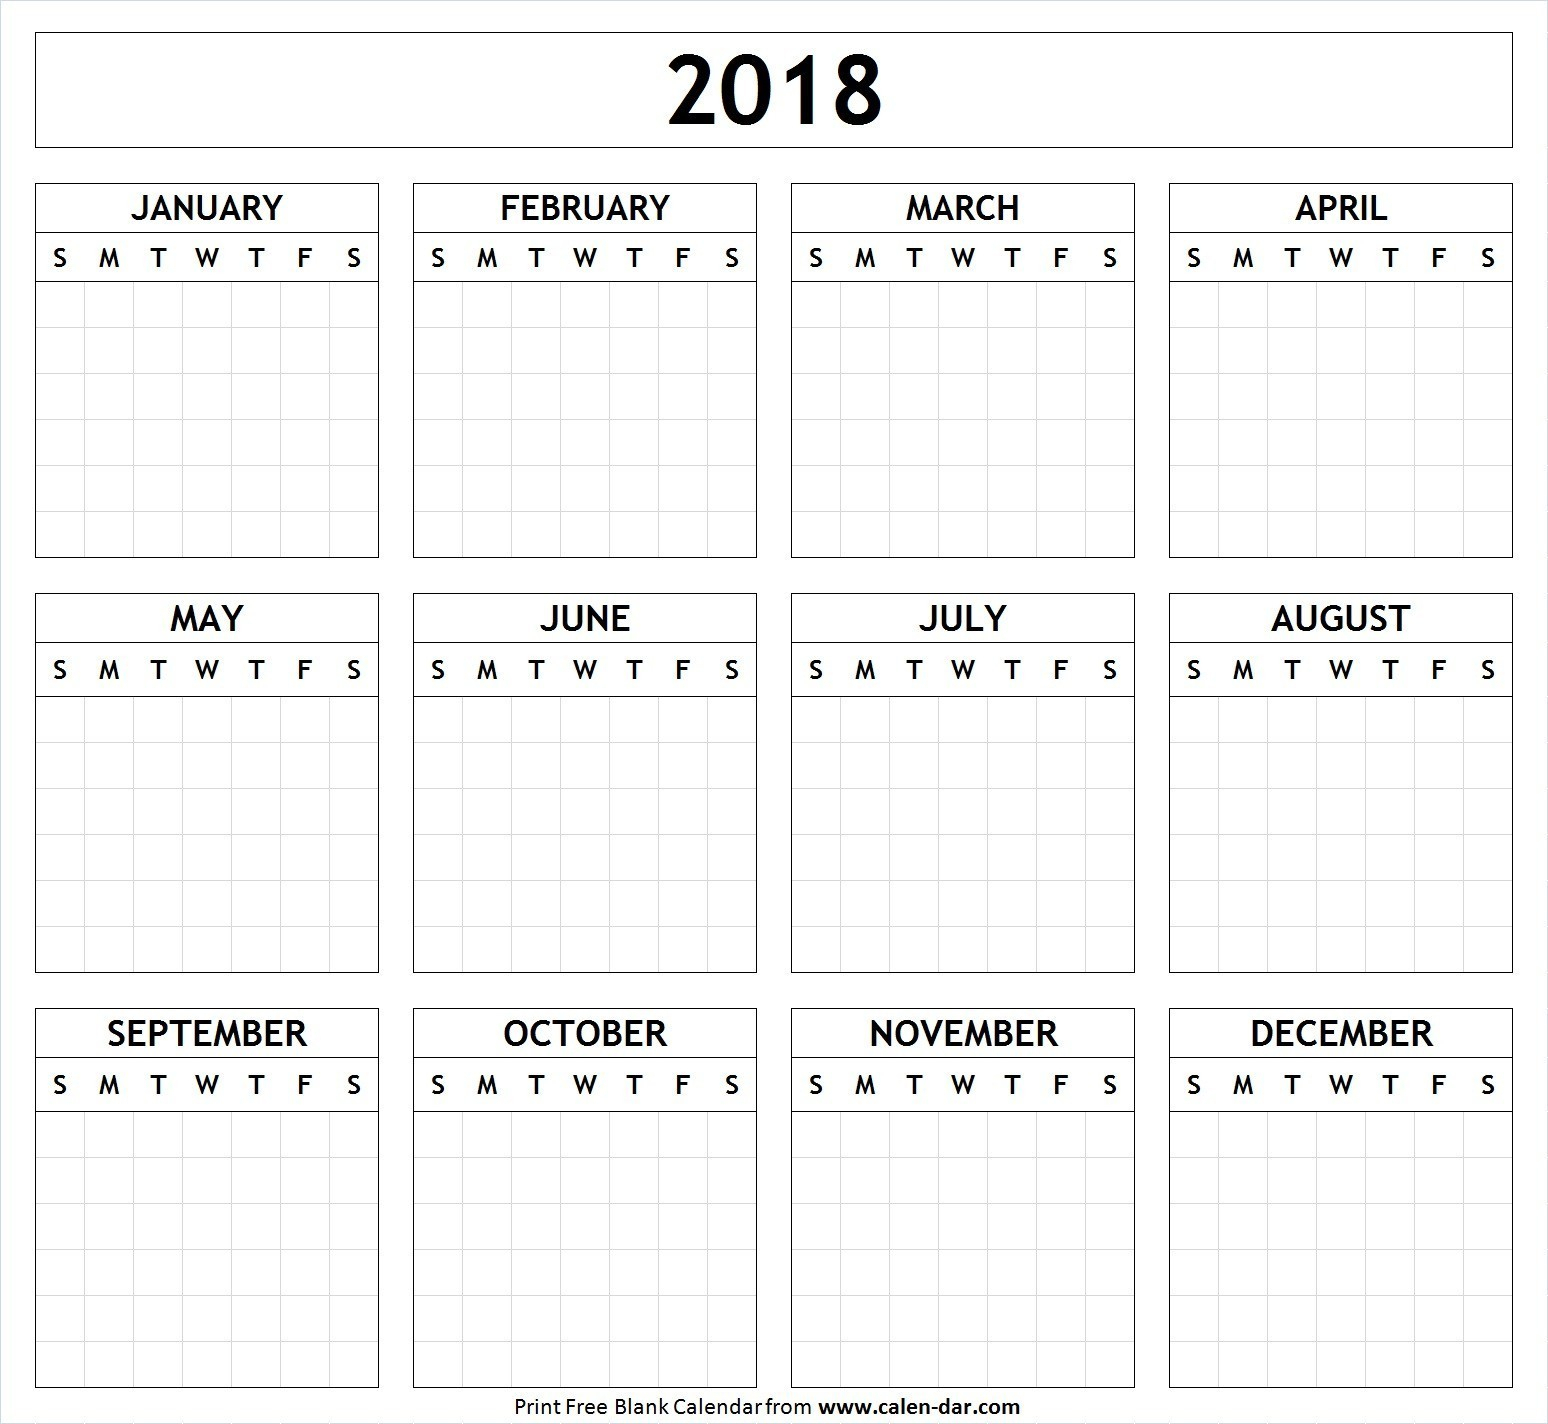 Printable Yearly Calendar 2018 Free Blank Template In For | Thekpark within Blank Printable Calendars Yearly